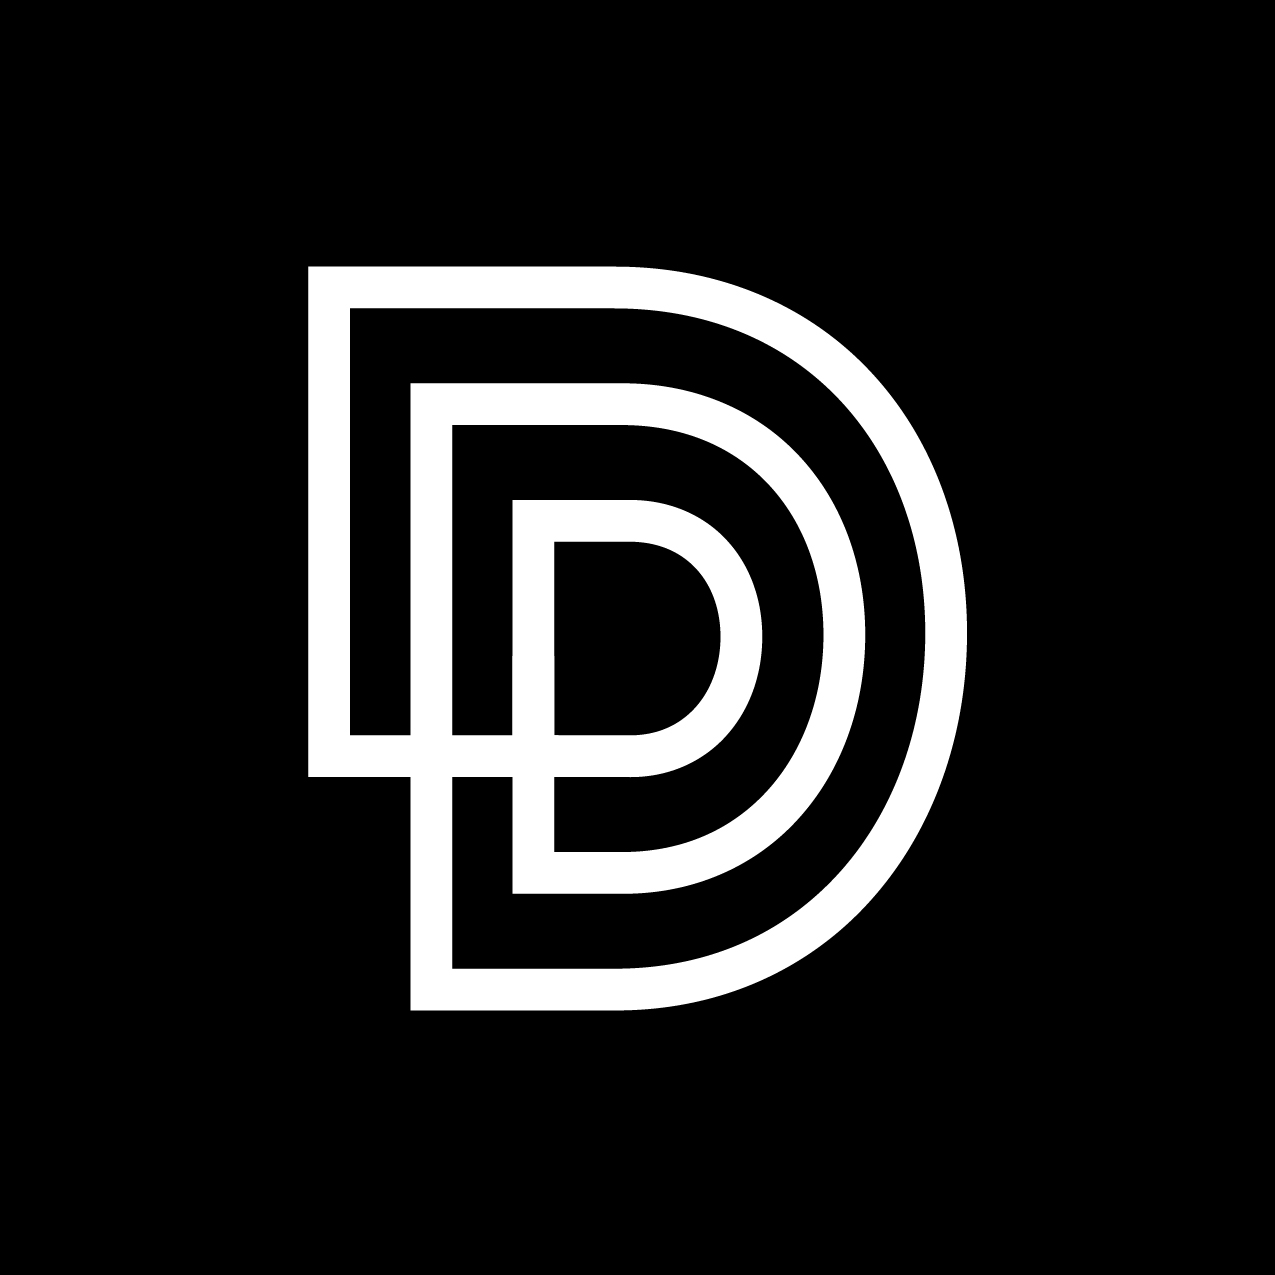 Letter D5 design by Furia